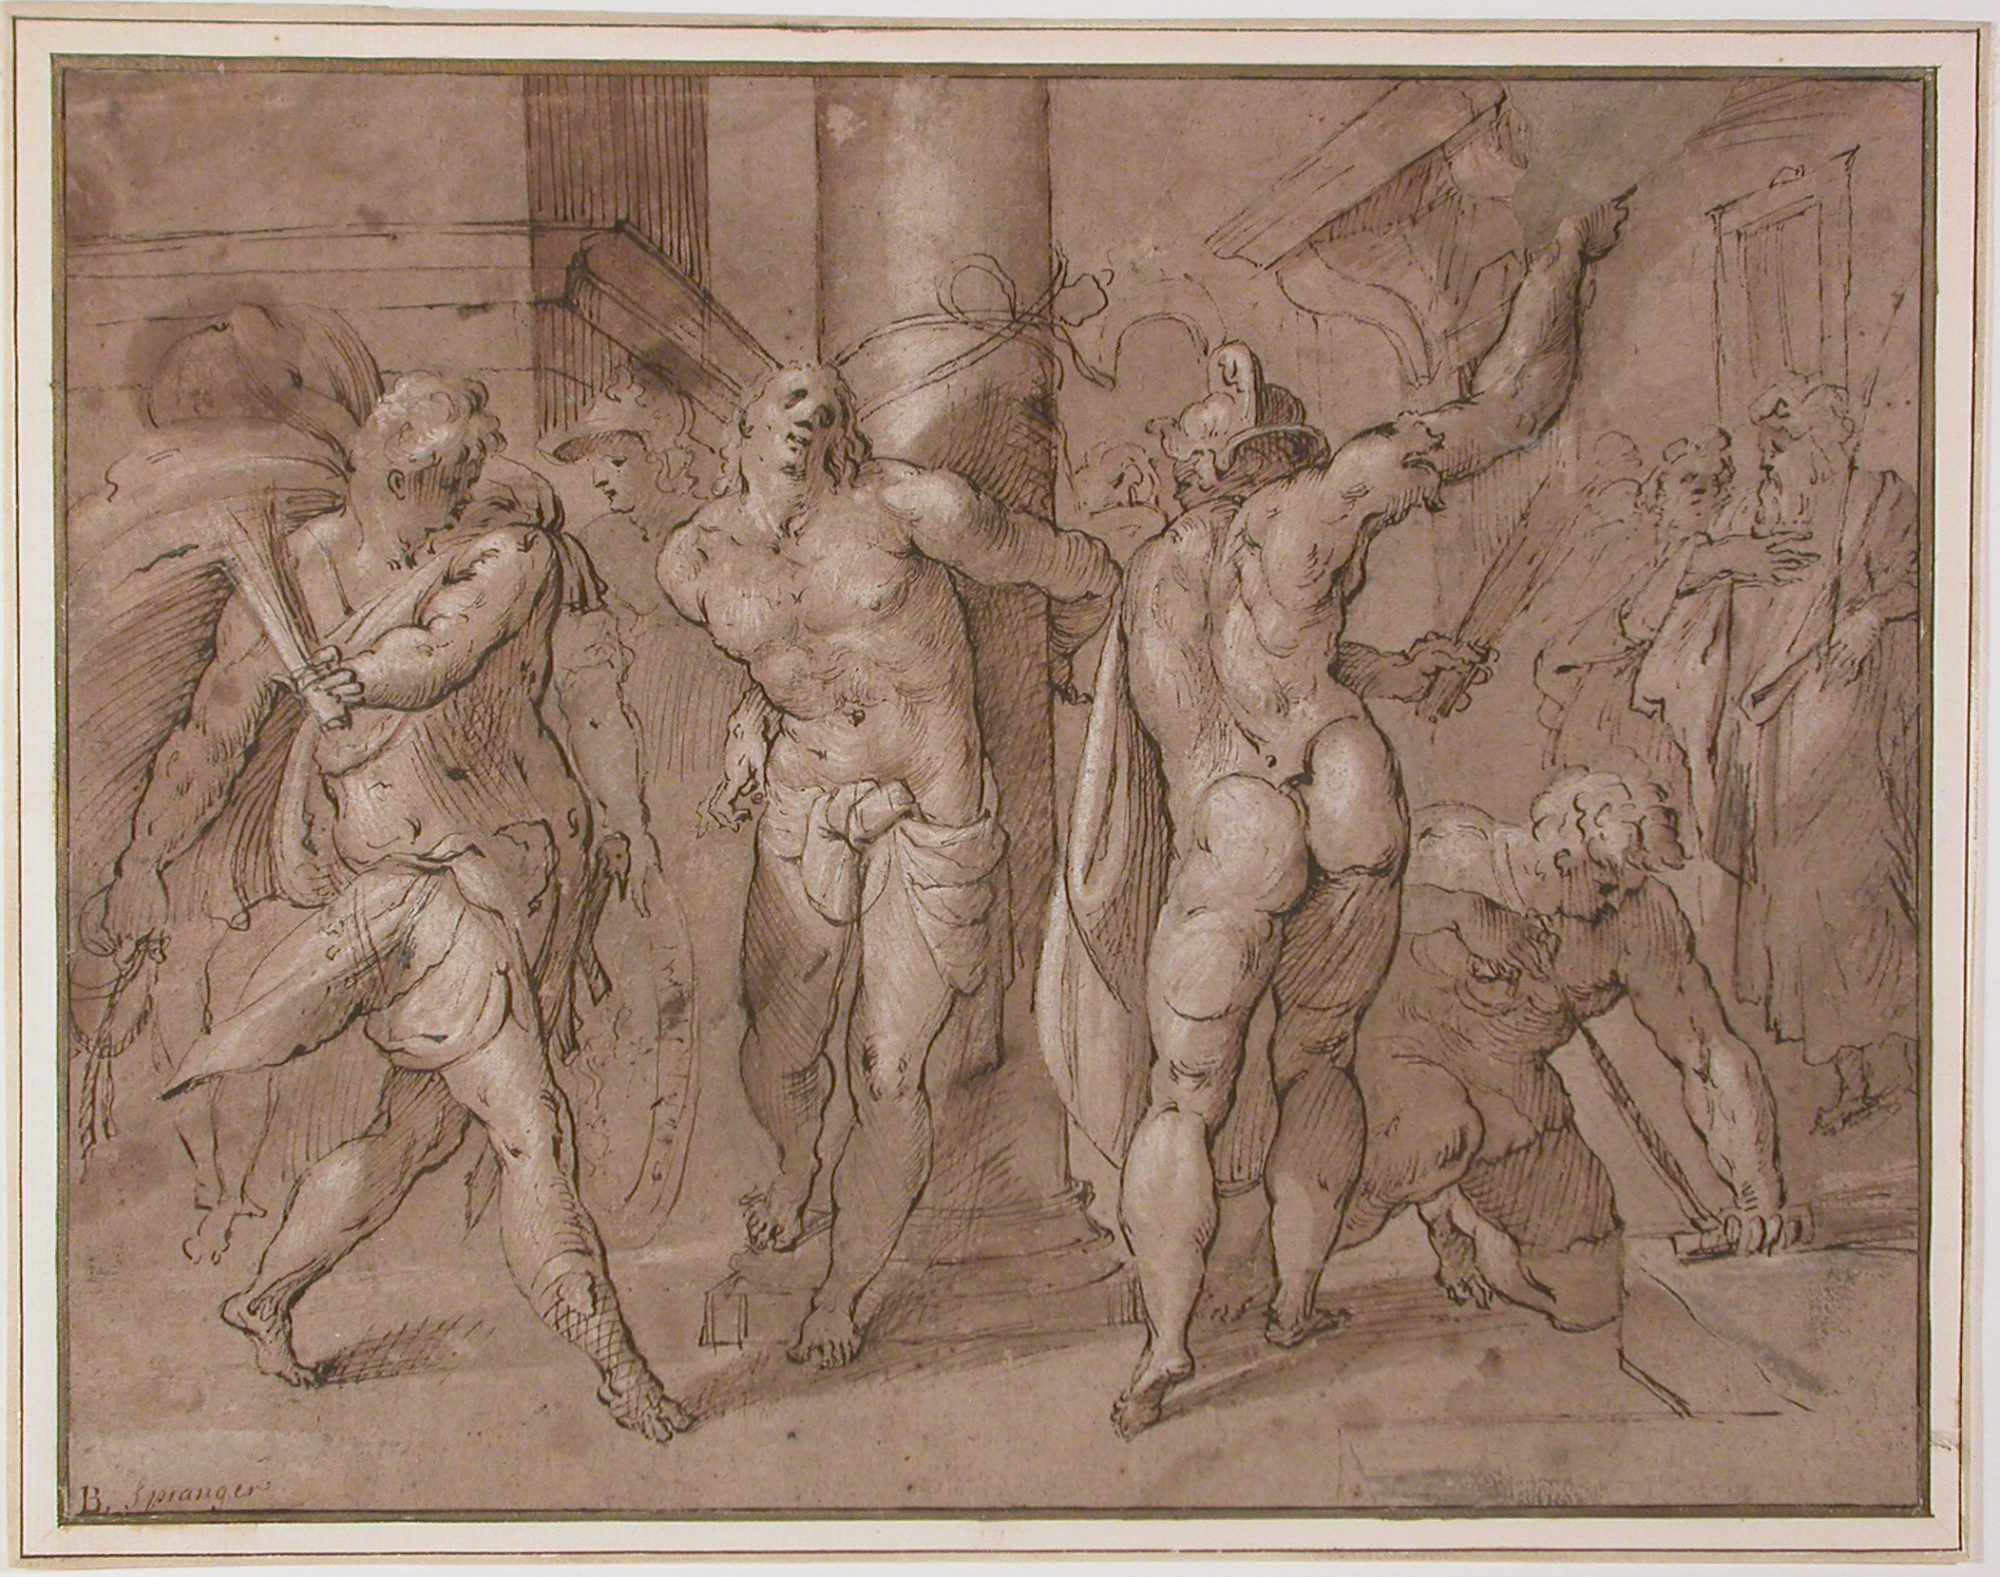 Hans Speeckaert (Flemish, 1540?–1577) Flagellation, date unknown. Pen and ink with brown wash and white heightening on paper. Museum purchase, Joseph O. Eaton Fund, 61.3